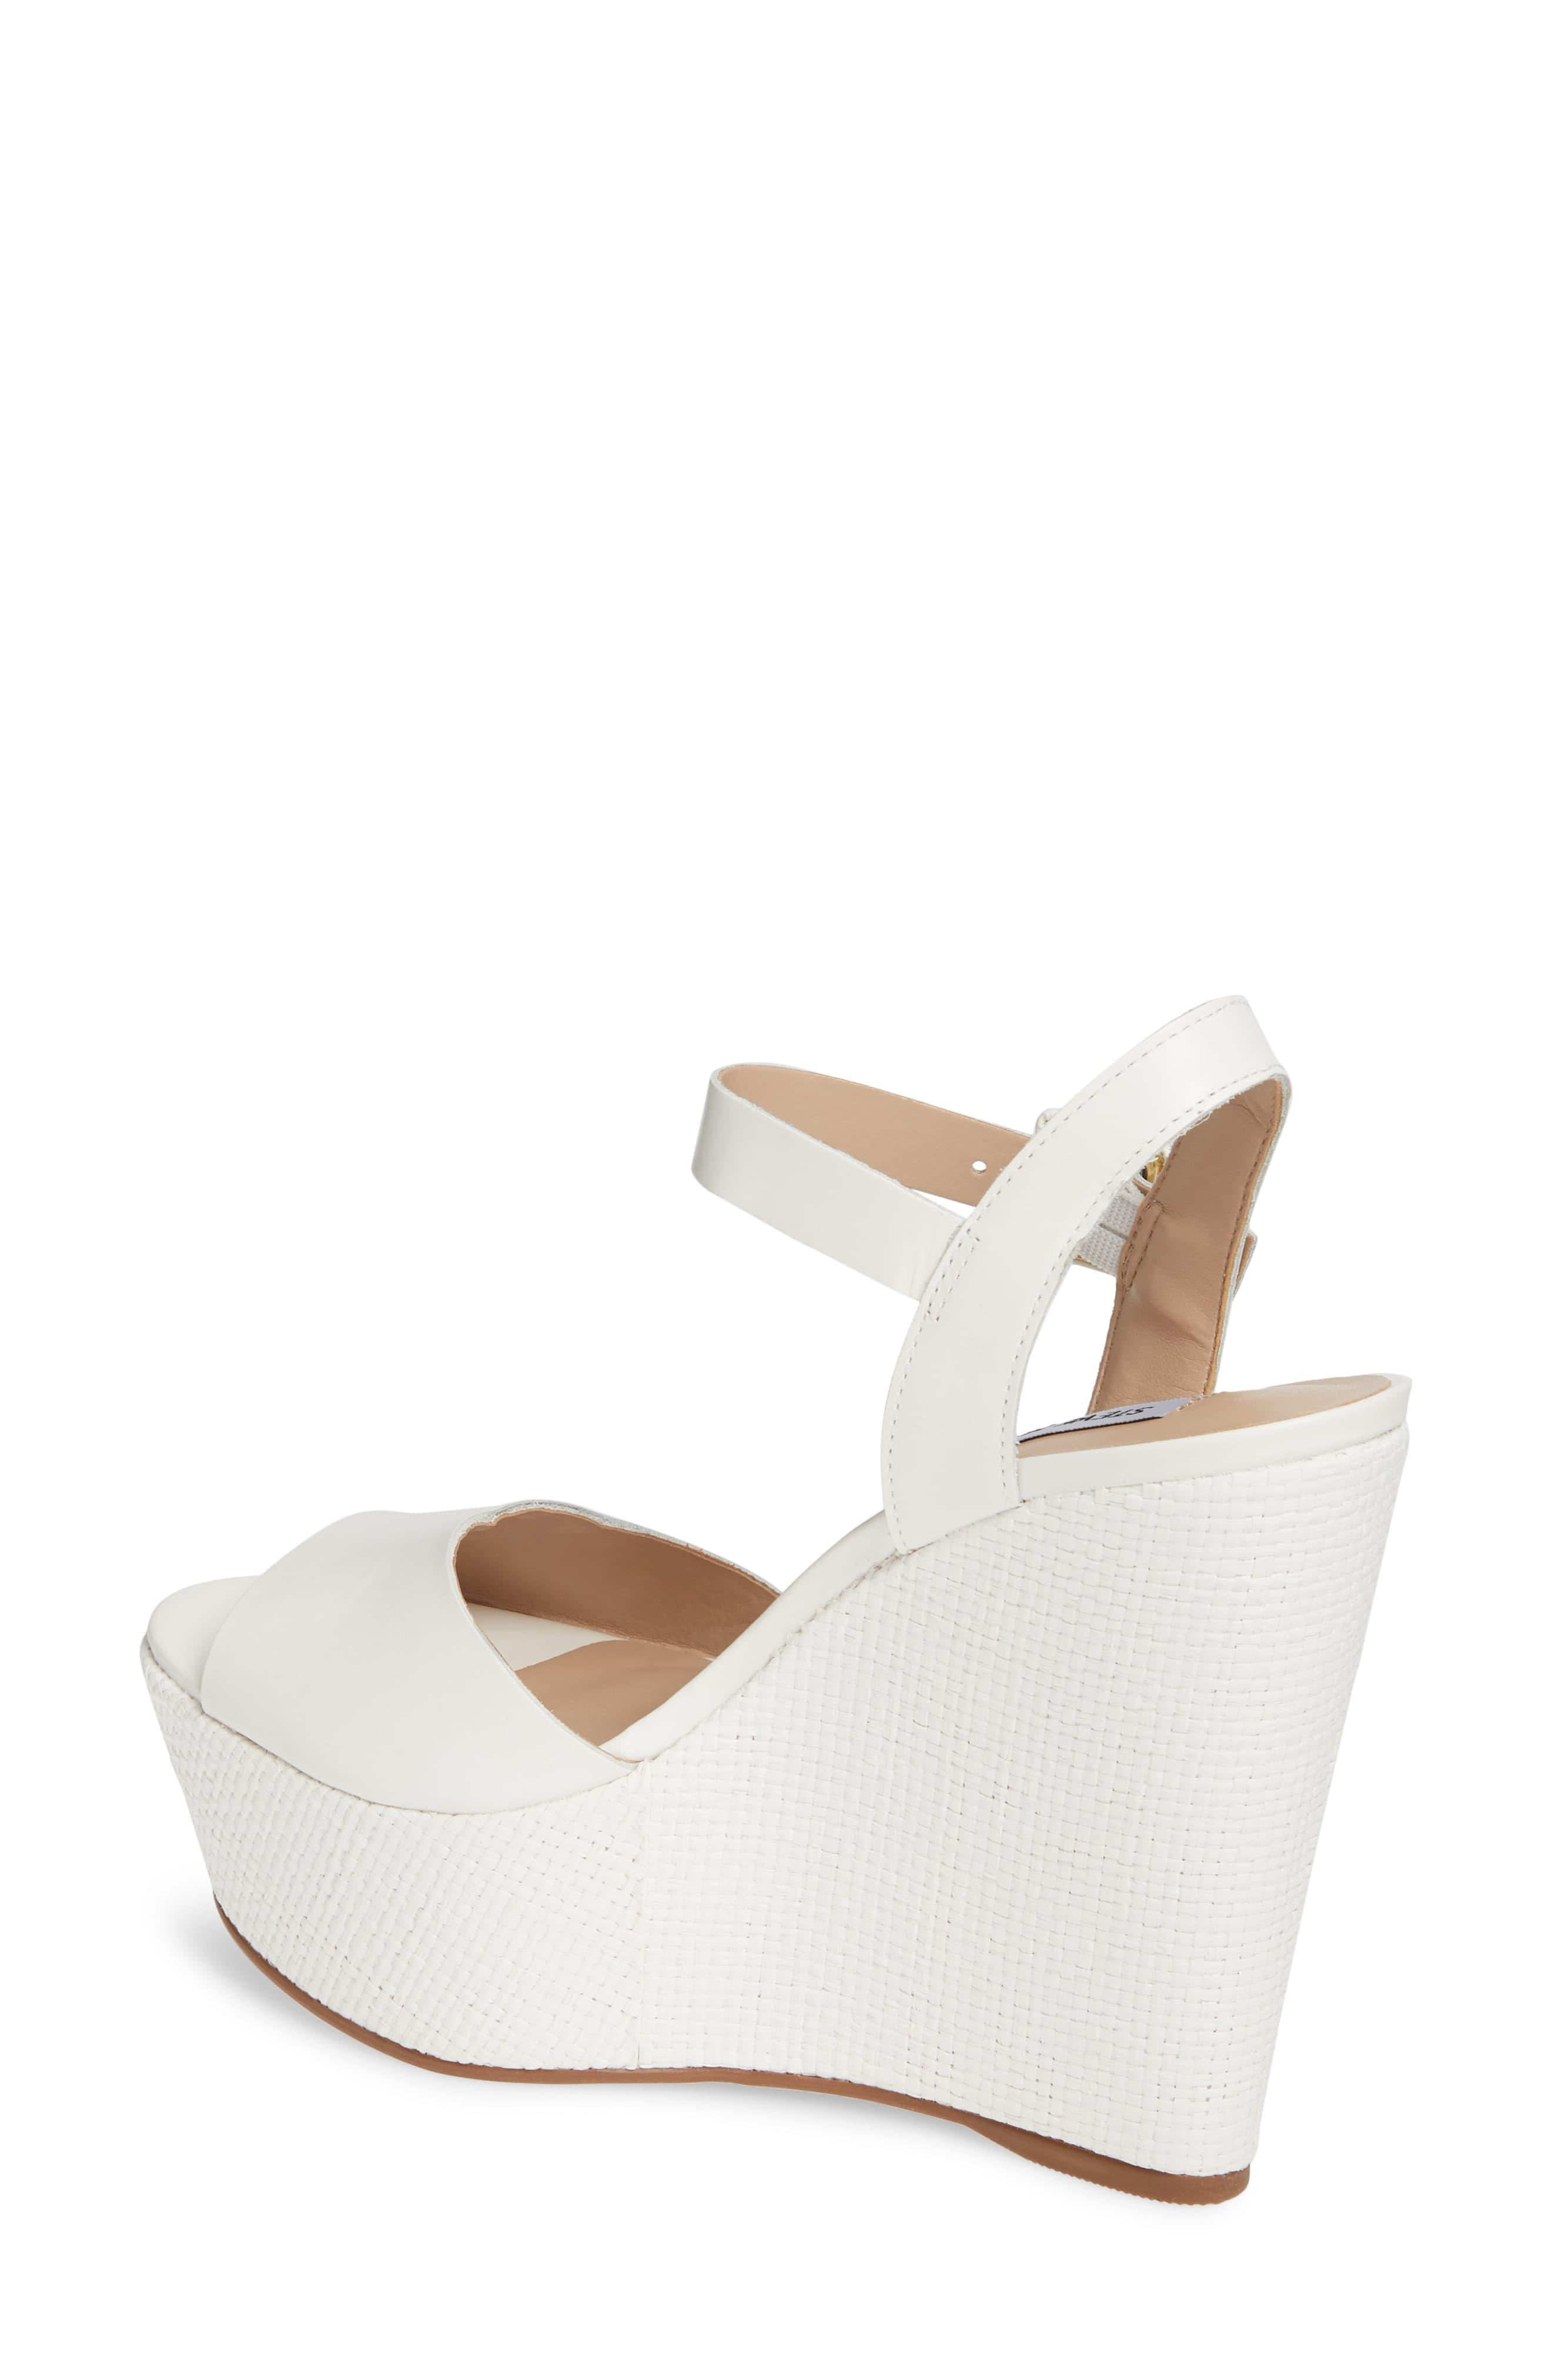 ab8531ba066 Steve Madden Citrus Leather Wedge Sandals in White - Save 56% - Lyst